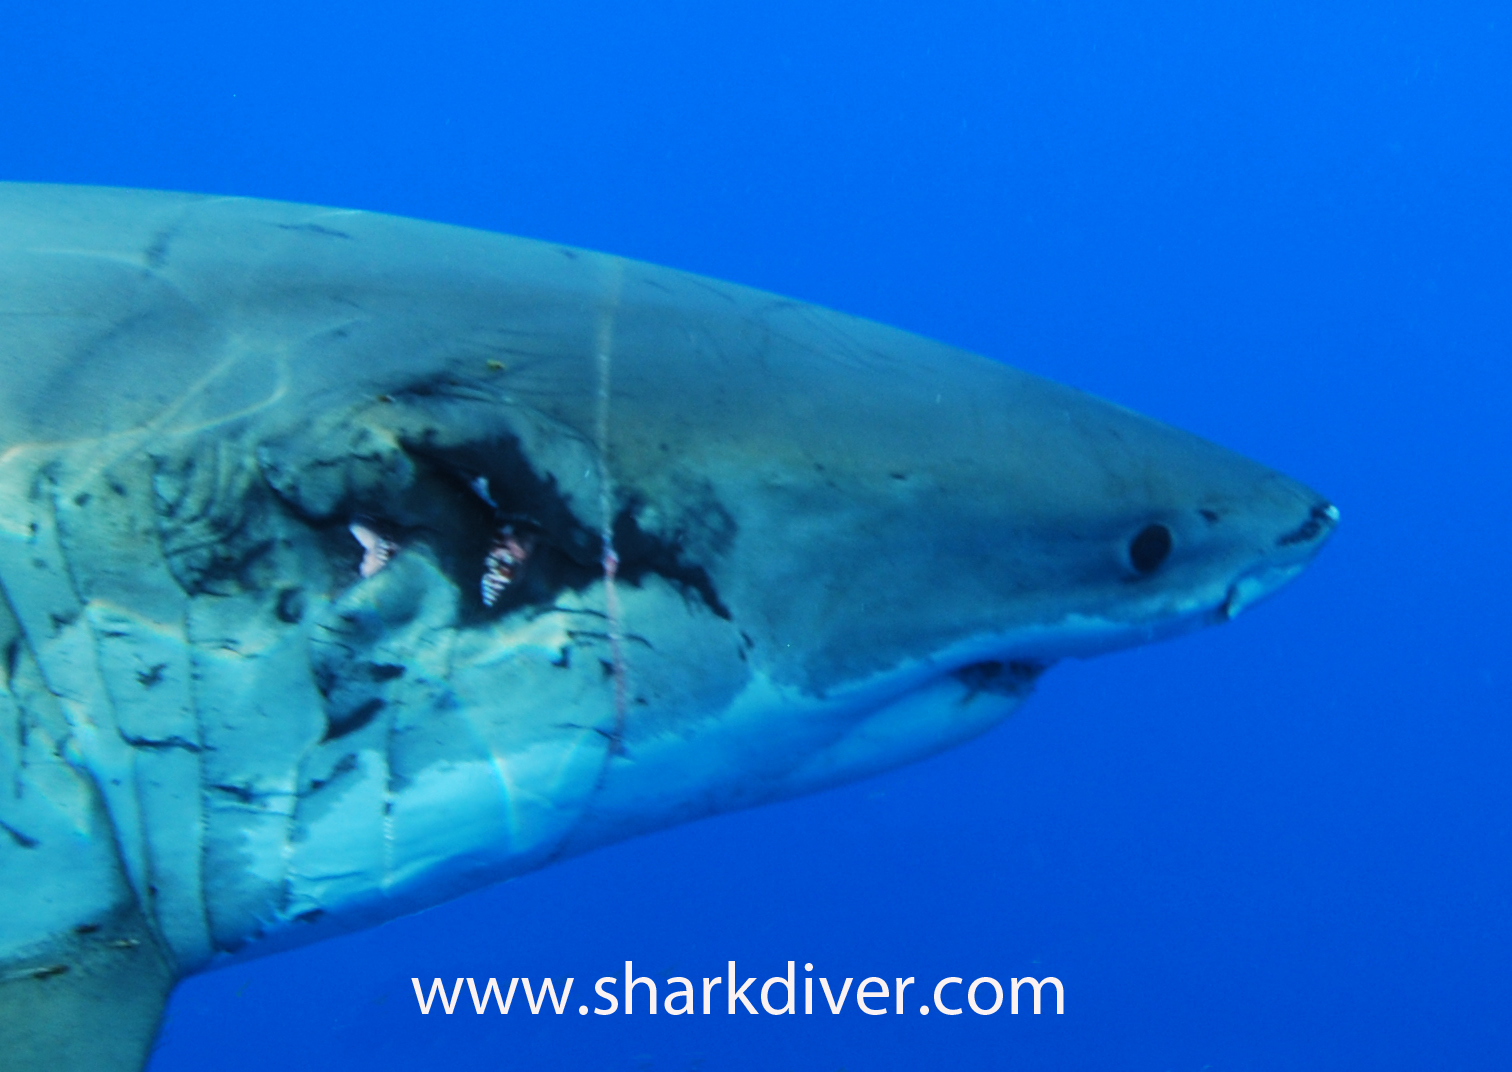 Shark Diver : Shark Diving : Swimming With Sharks: How fast do Great White Sharks heal?